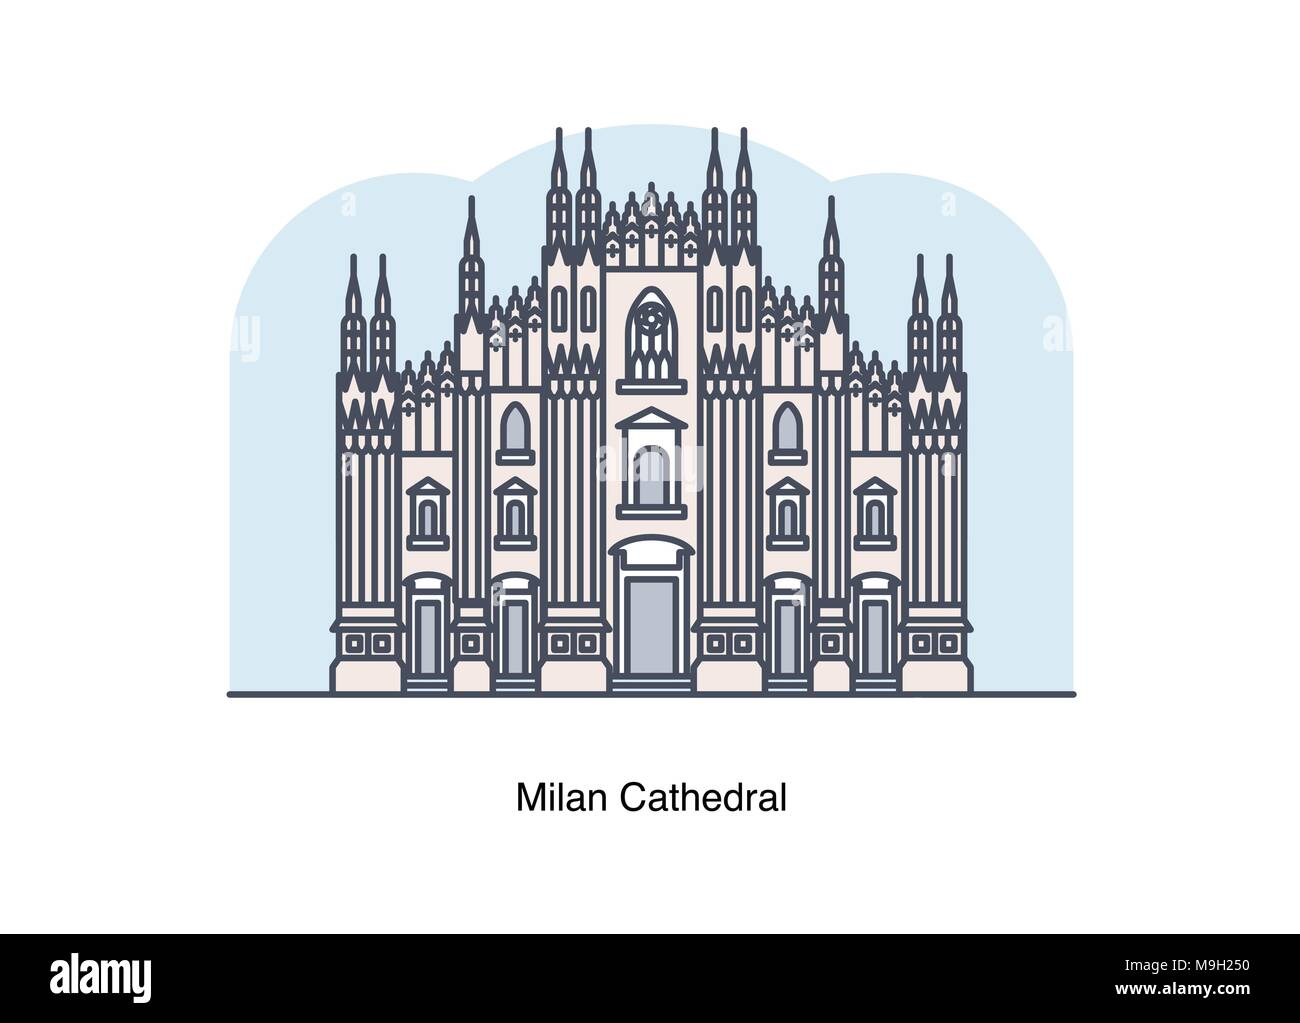 Vector line illustration of Milan Cathedral, Milan, Italy. - Stock Vector